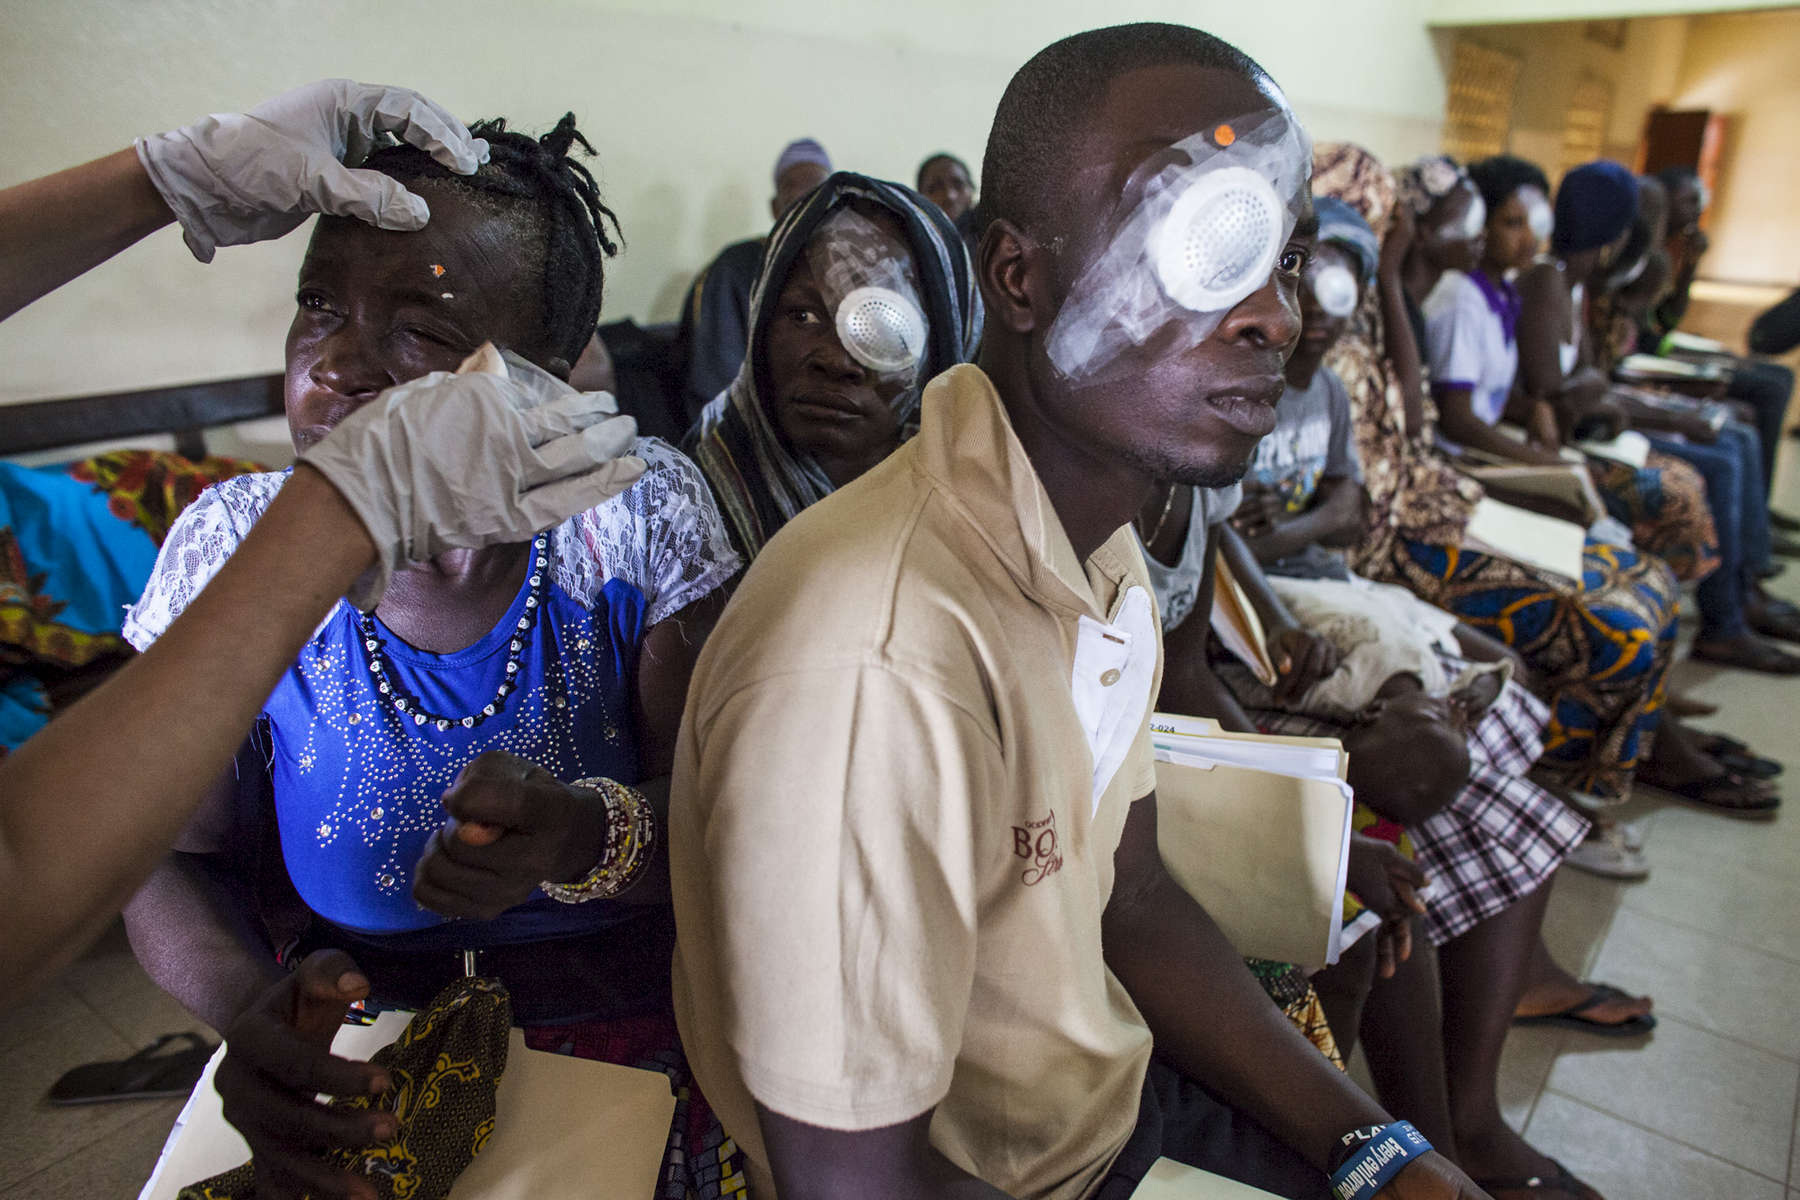 Ebola survivors have their bandages removed the day after their cataracts are removed at the Kissy United Methodist Church Eye Hospital in Freetown, Sierra Leone.